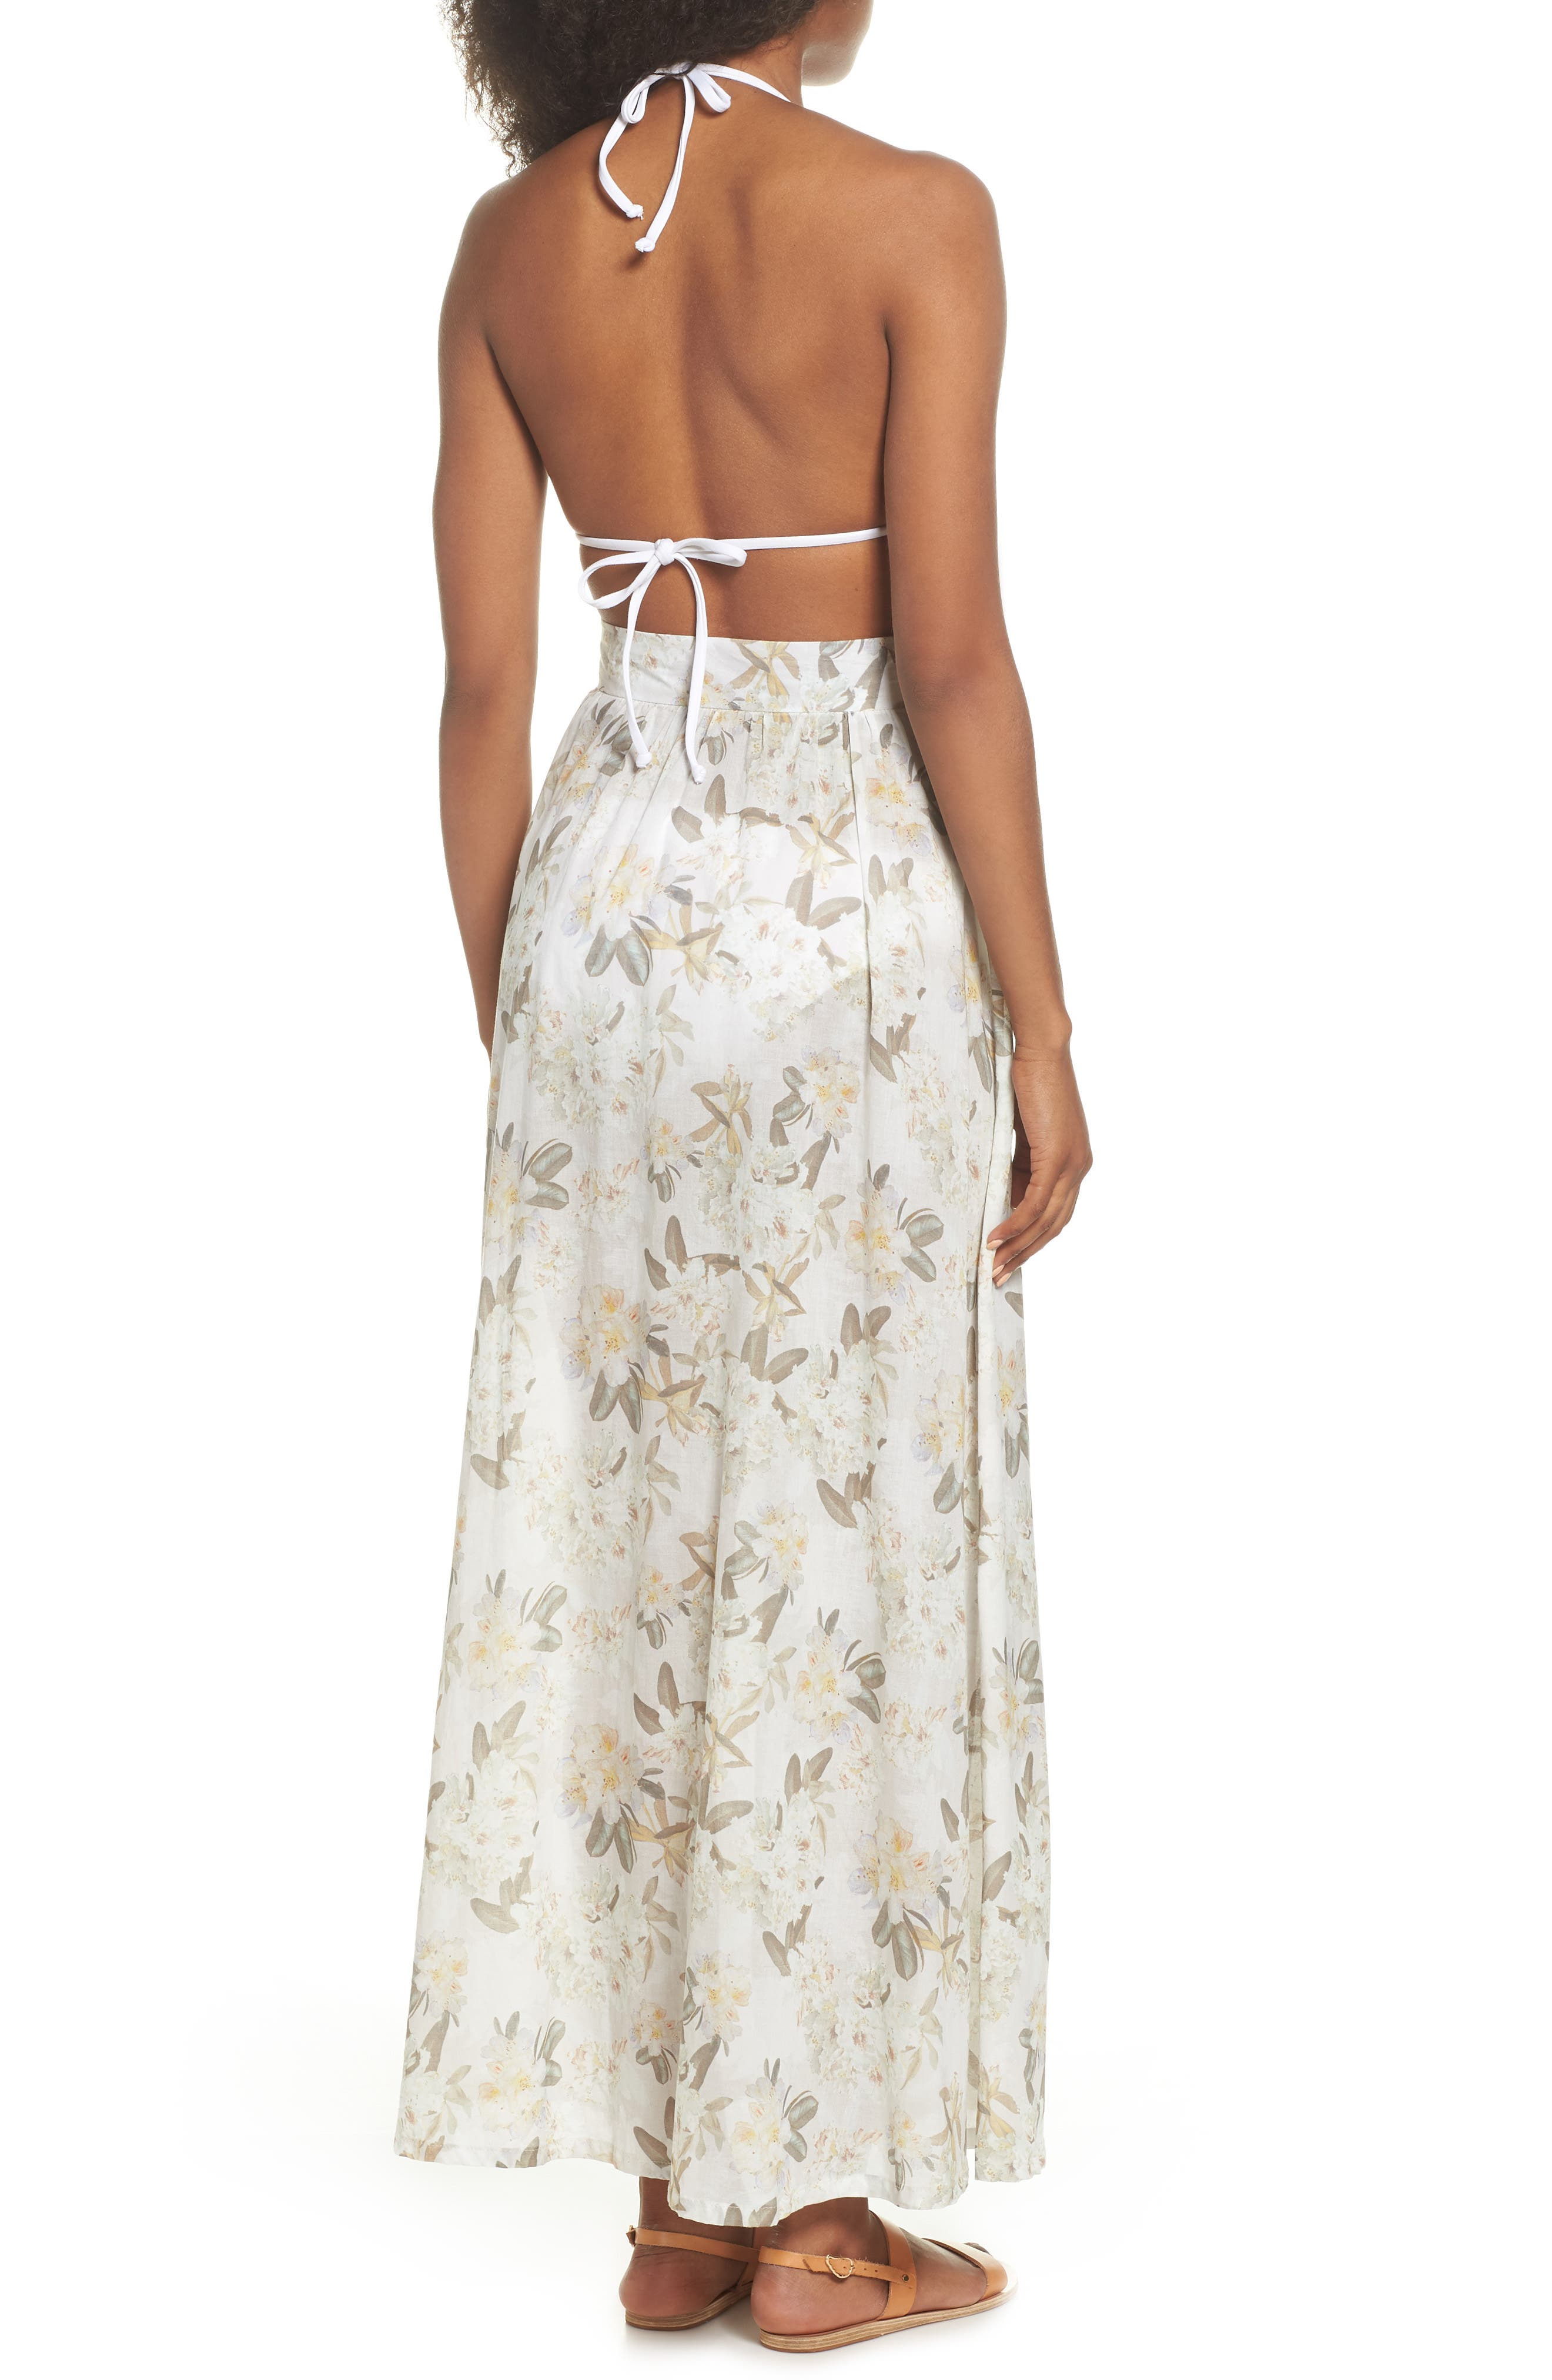 Edith Cover-Up Maxi Skirt,                             Alternate thumbnail 2, color,                             Ete Floral White